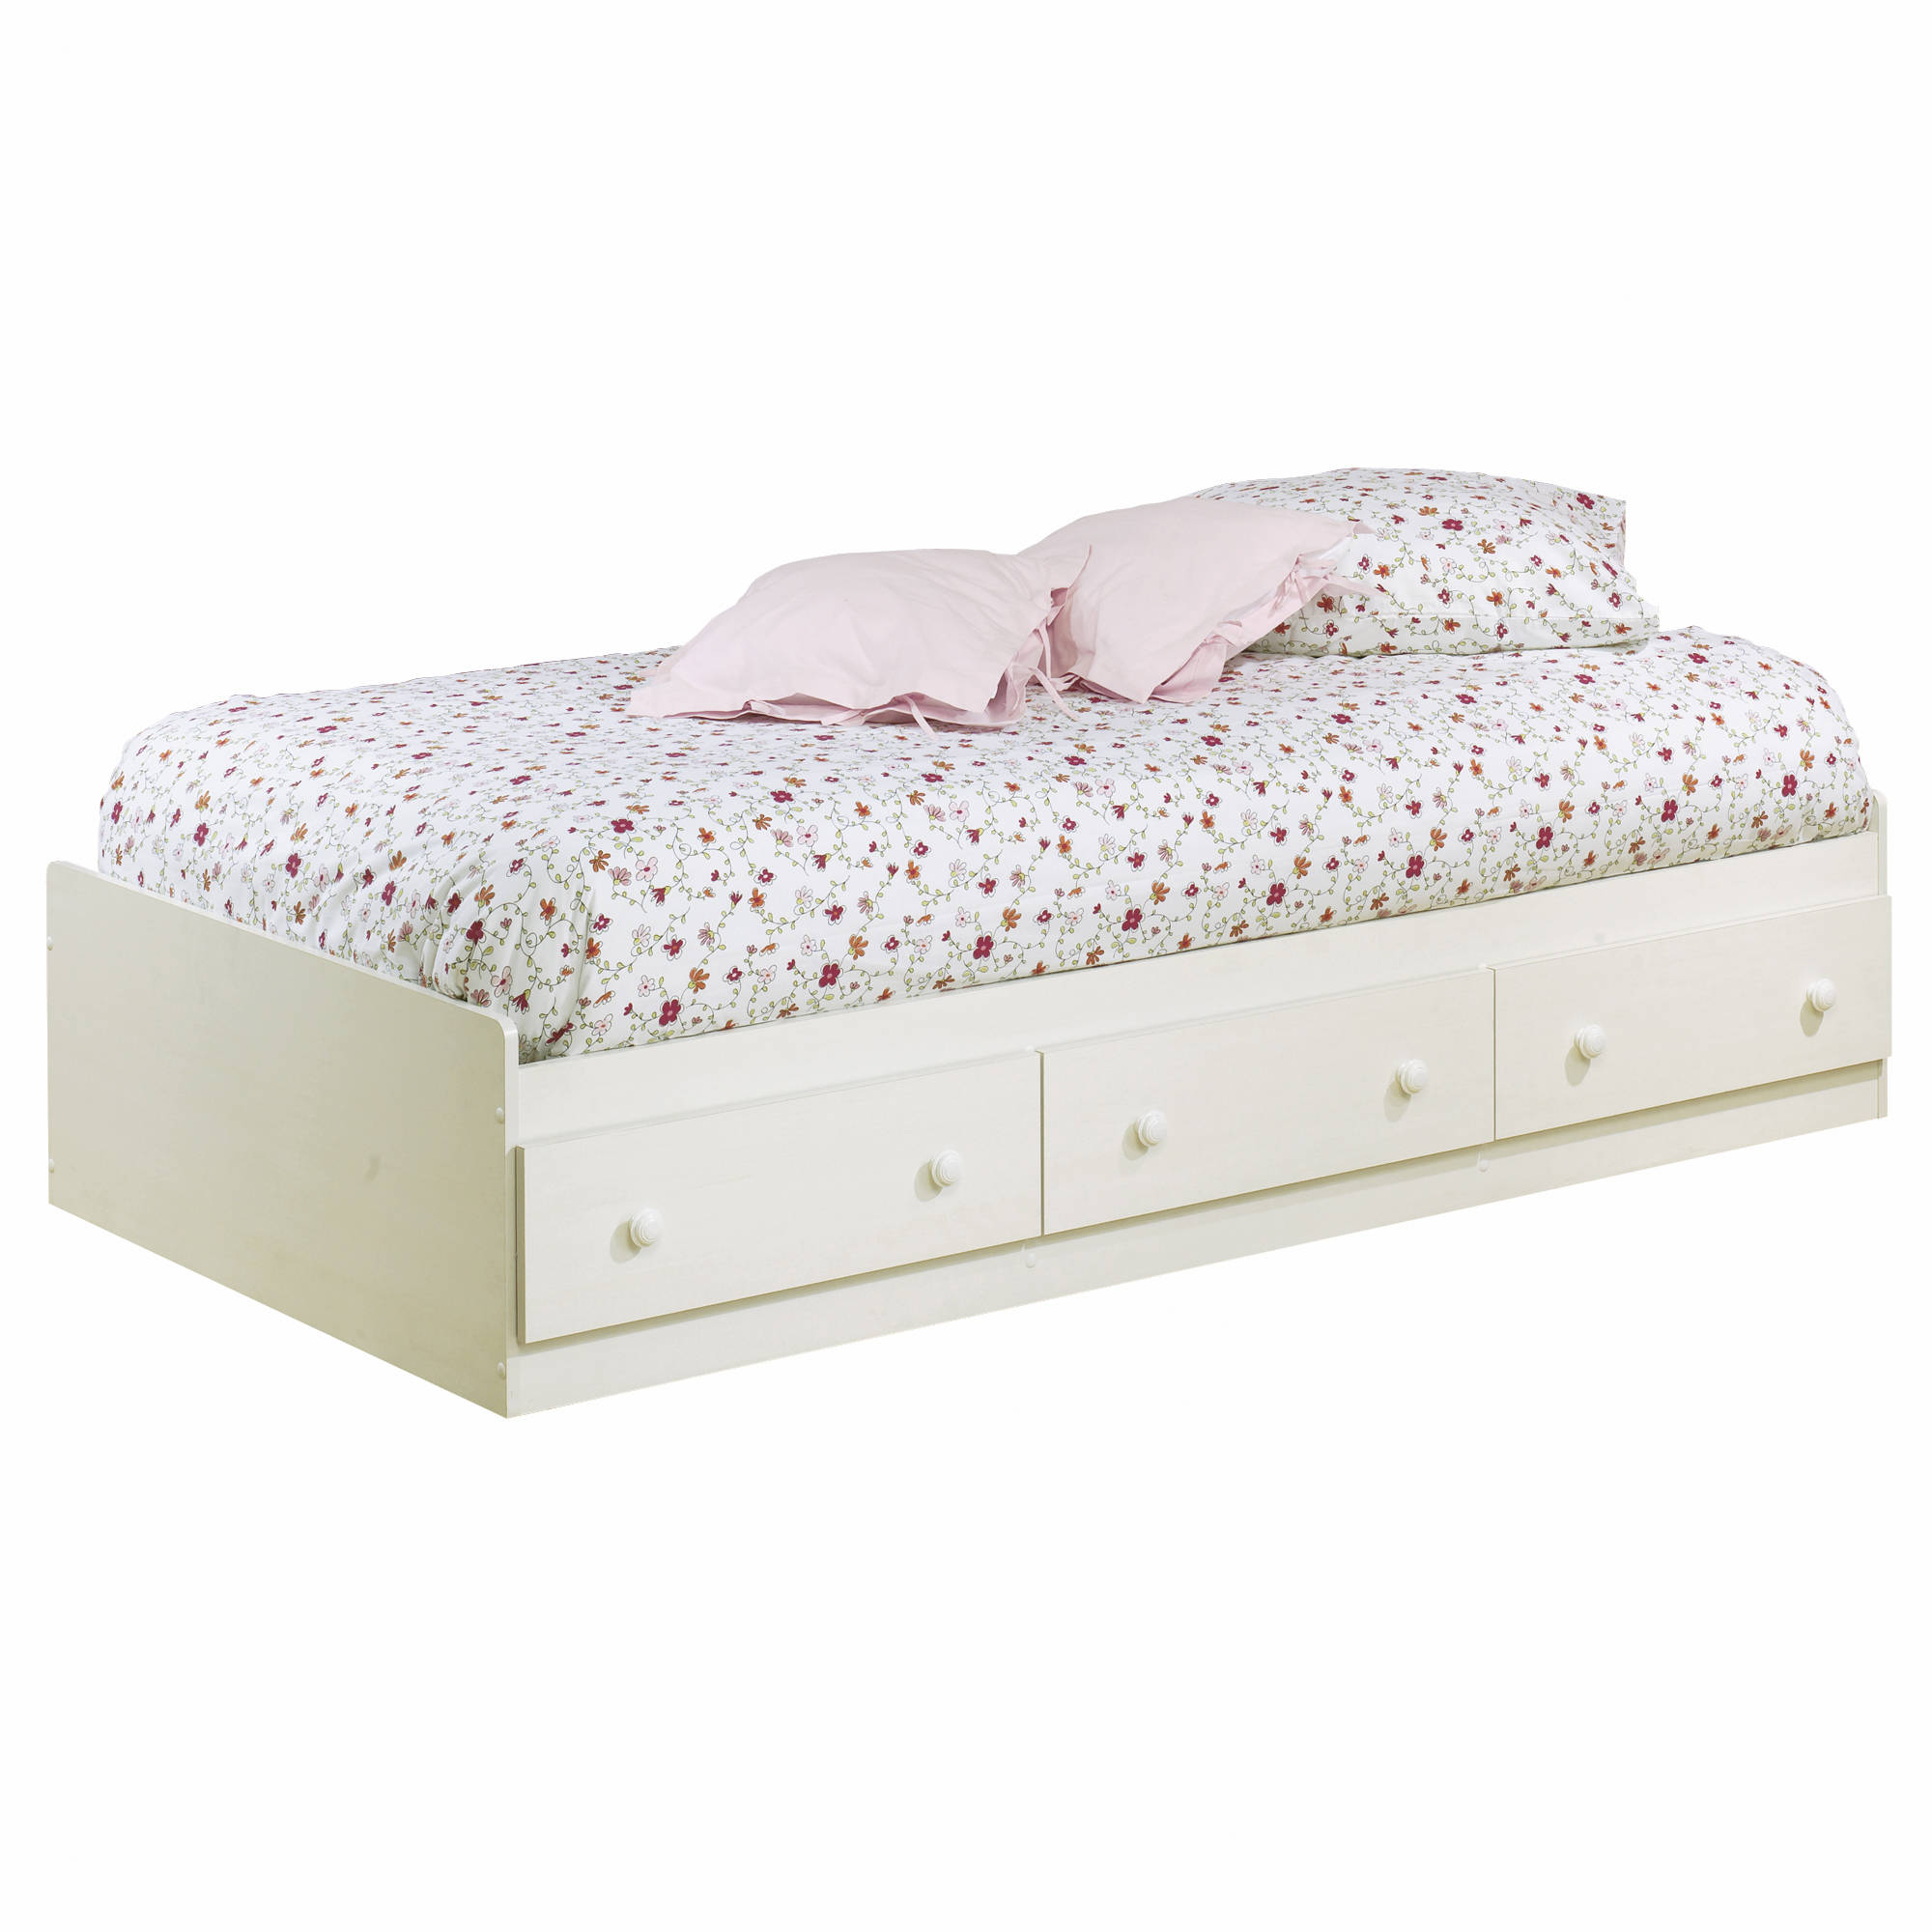 South Shore Summer Breeze Twin Mates Bed with 3 Drawers, 39'', Multiple Finishes